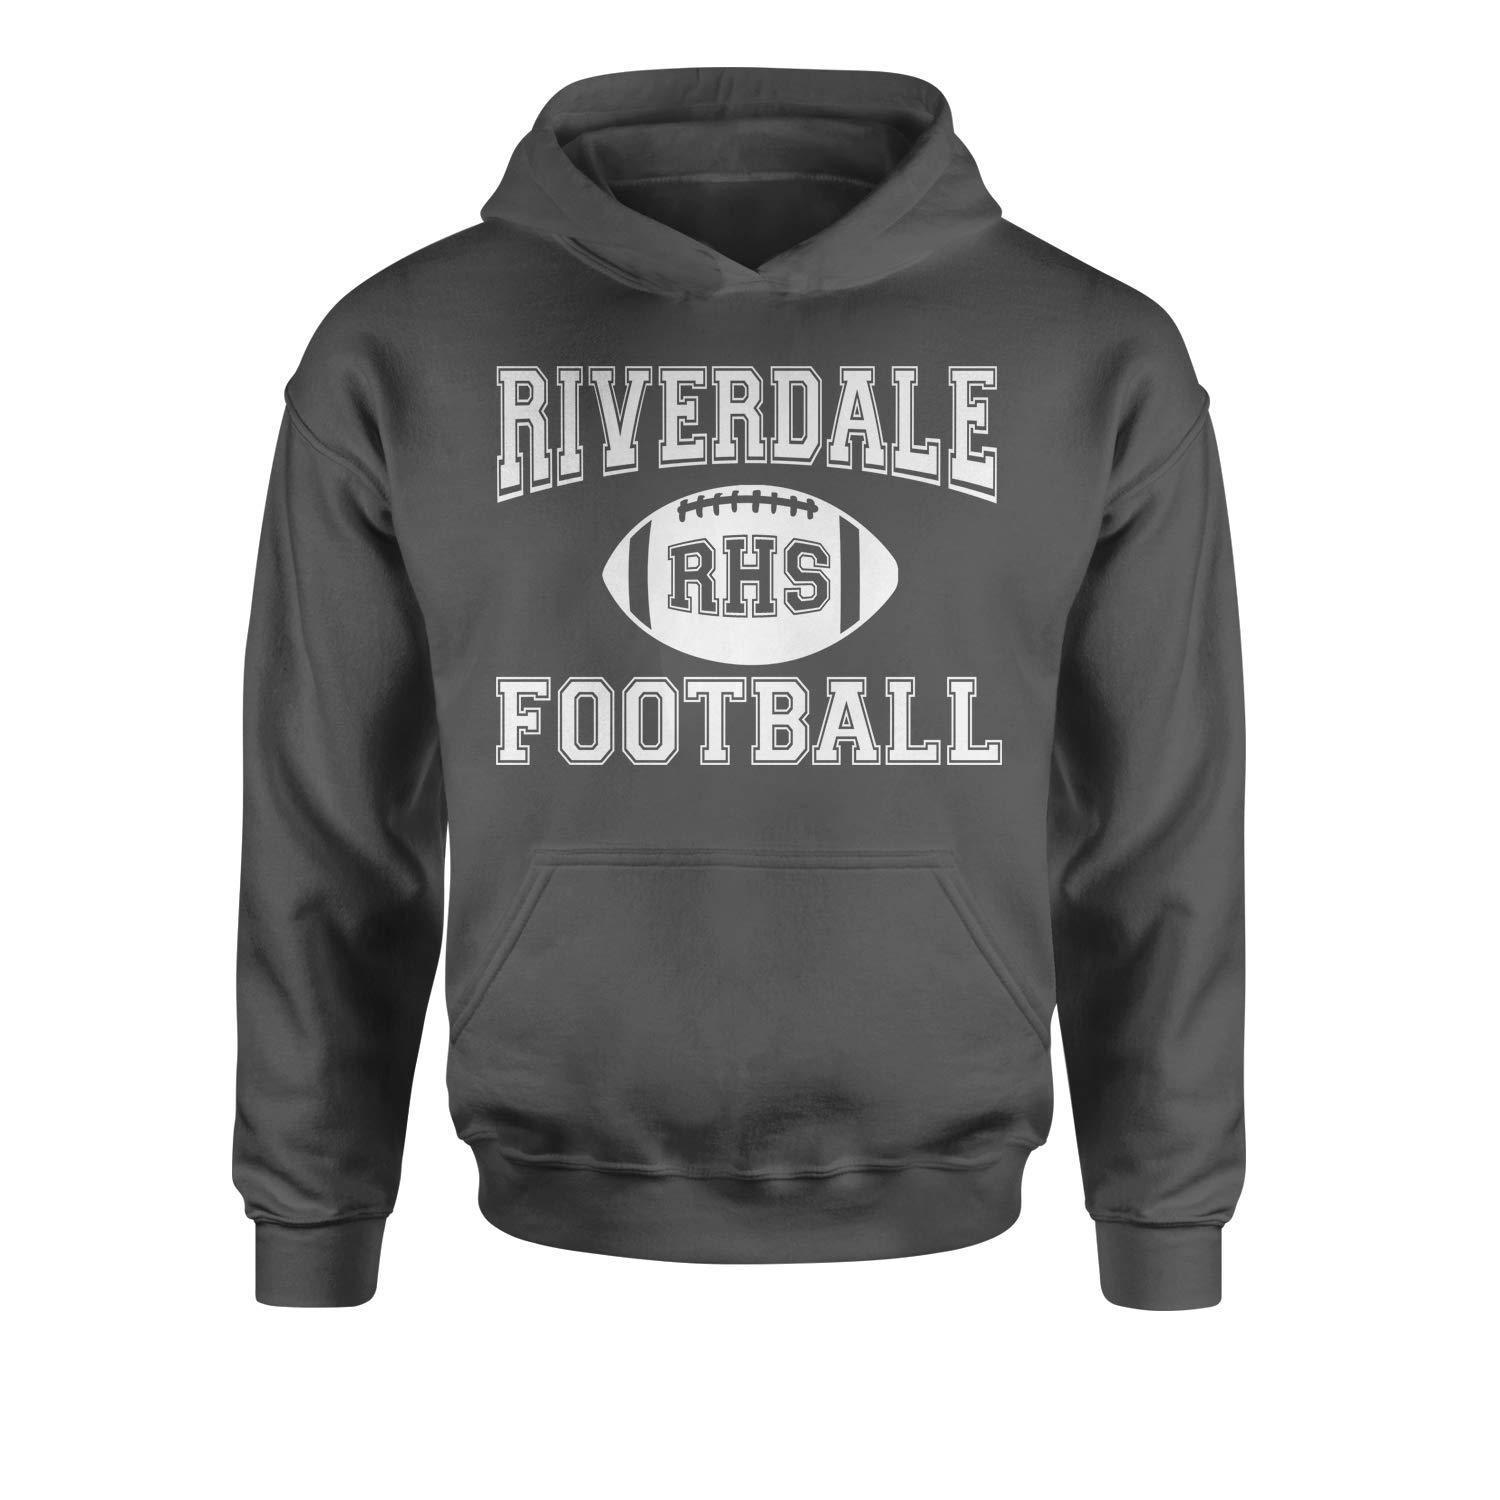 Expression Tees Riverdale Football Youth-Sized Hoodie